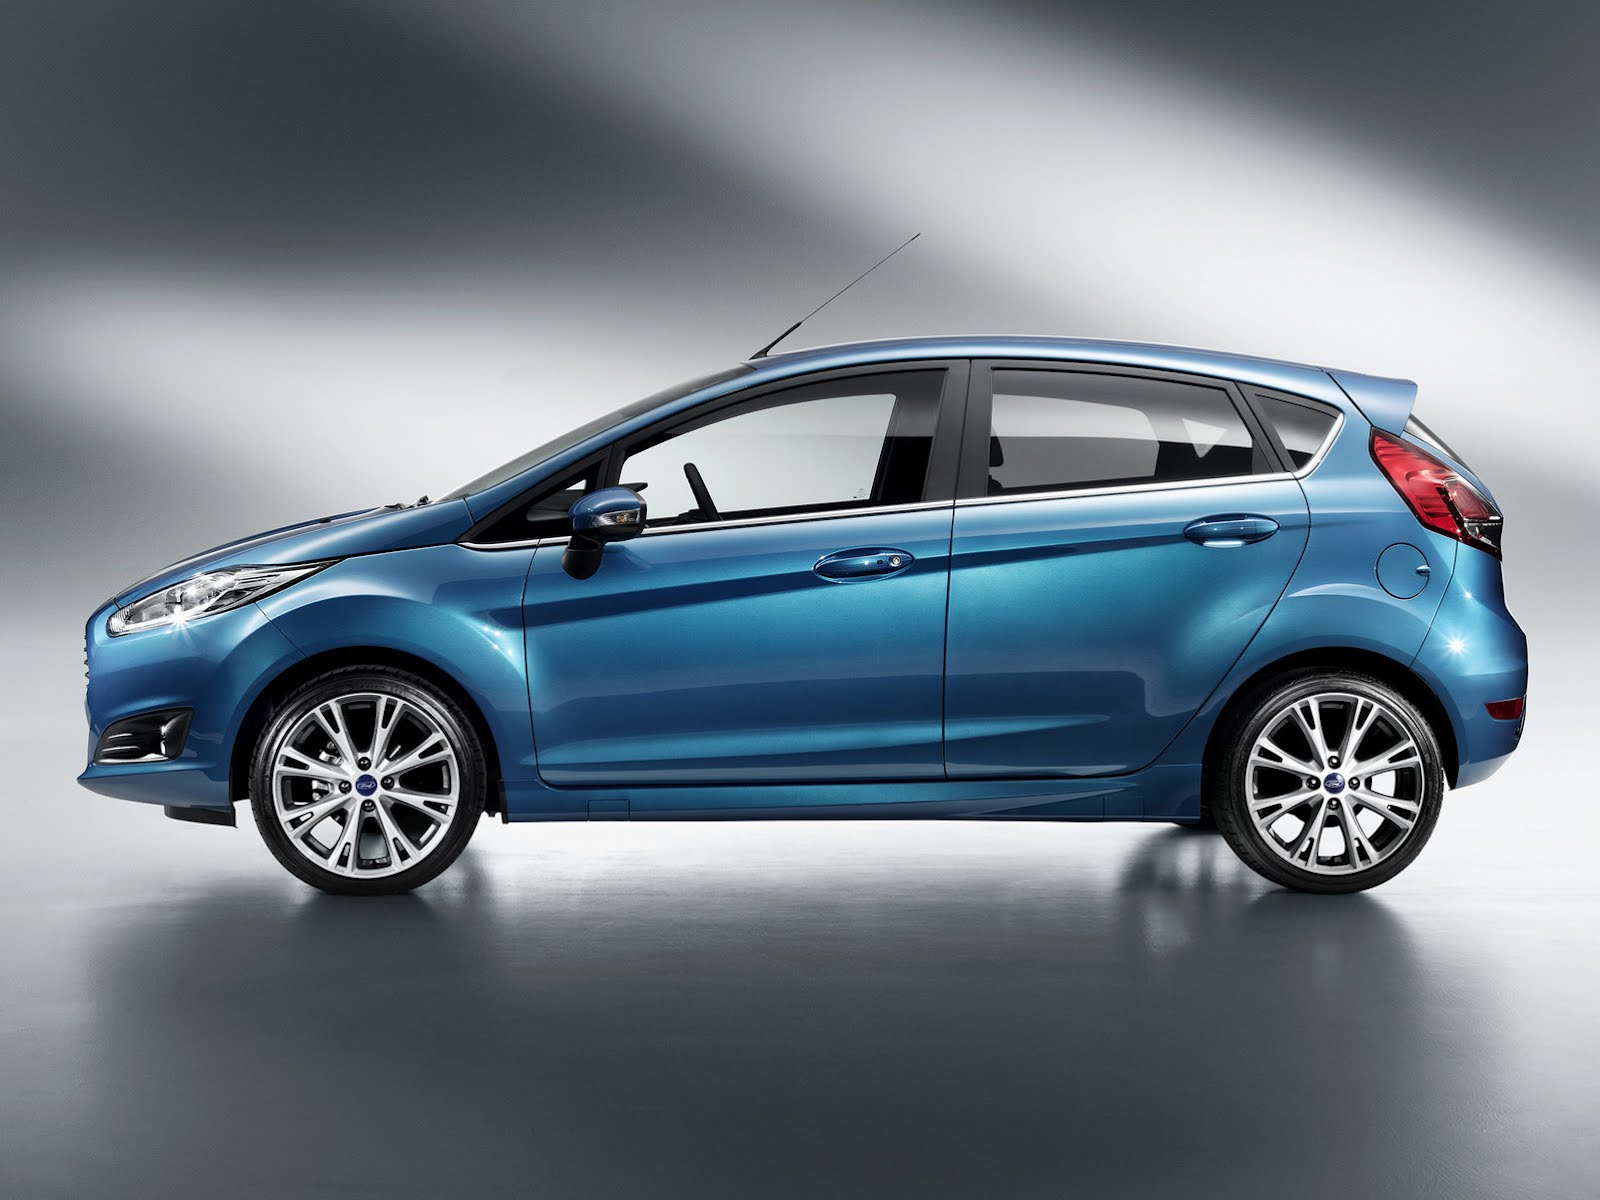 2013 ford fiesta information and photos momentcar. Black Bedroom Furniture Sets. Home Design Ideas